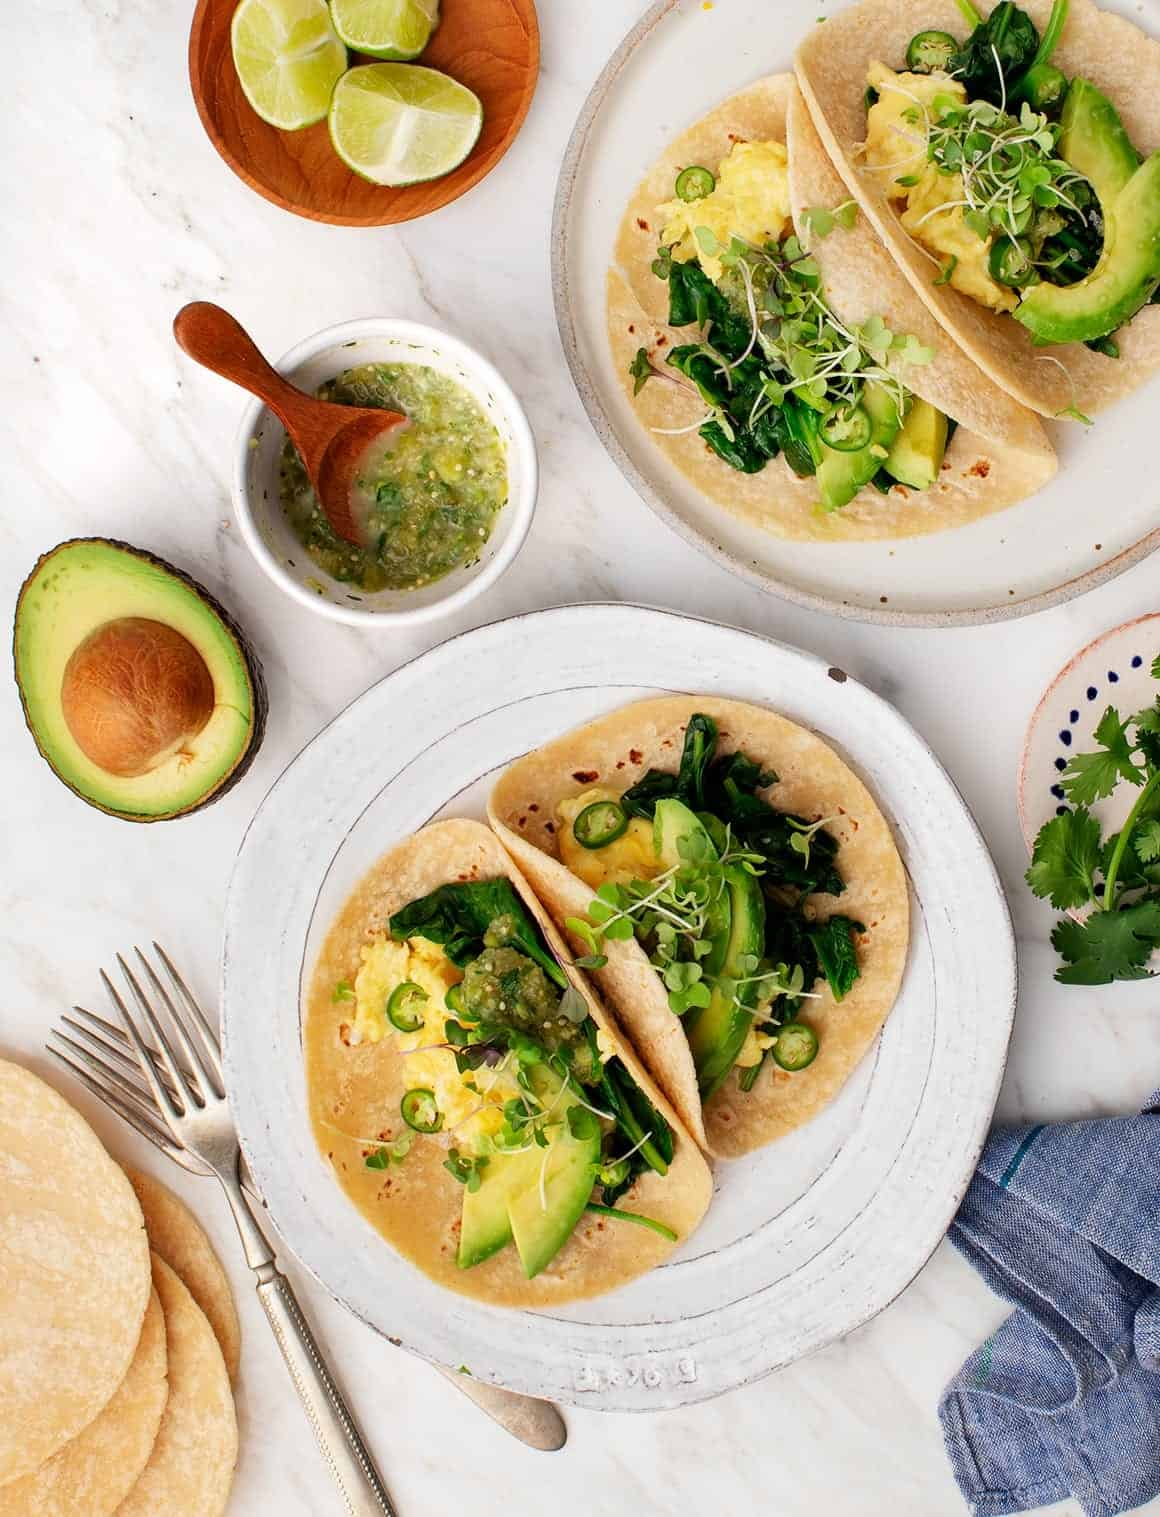 Avocado Recipes: Avocado Tomatillo Breakfast Tacos